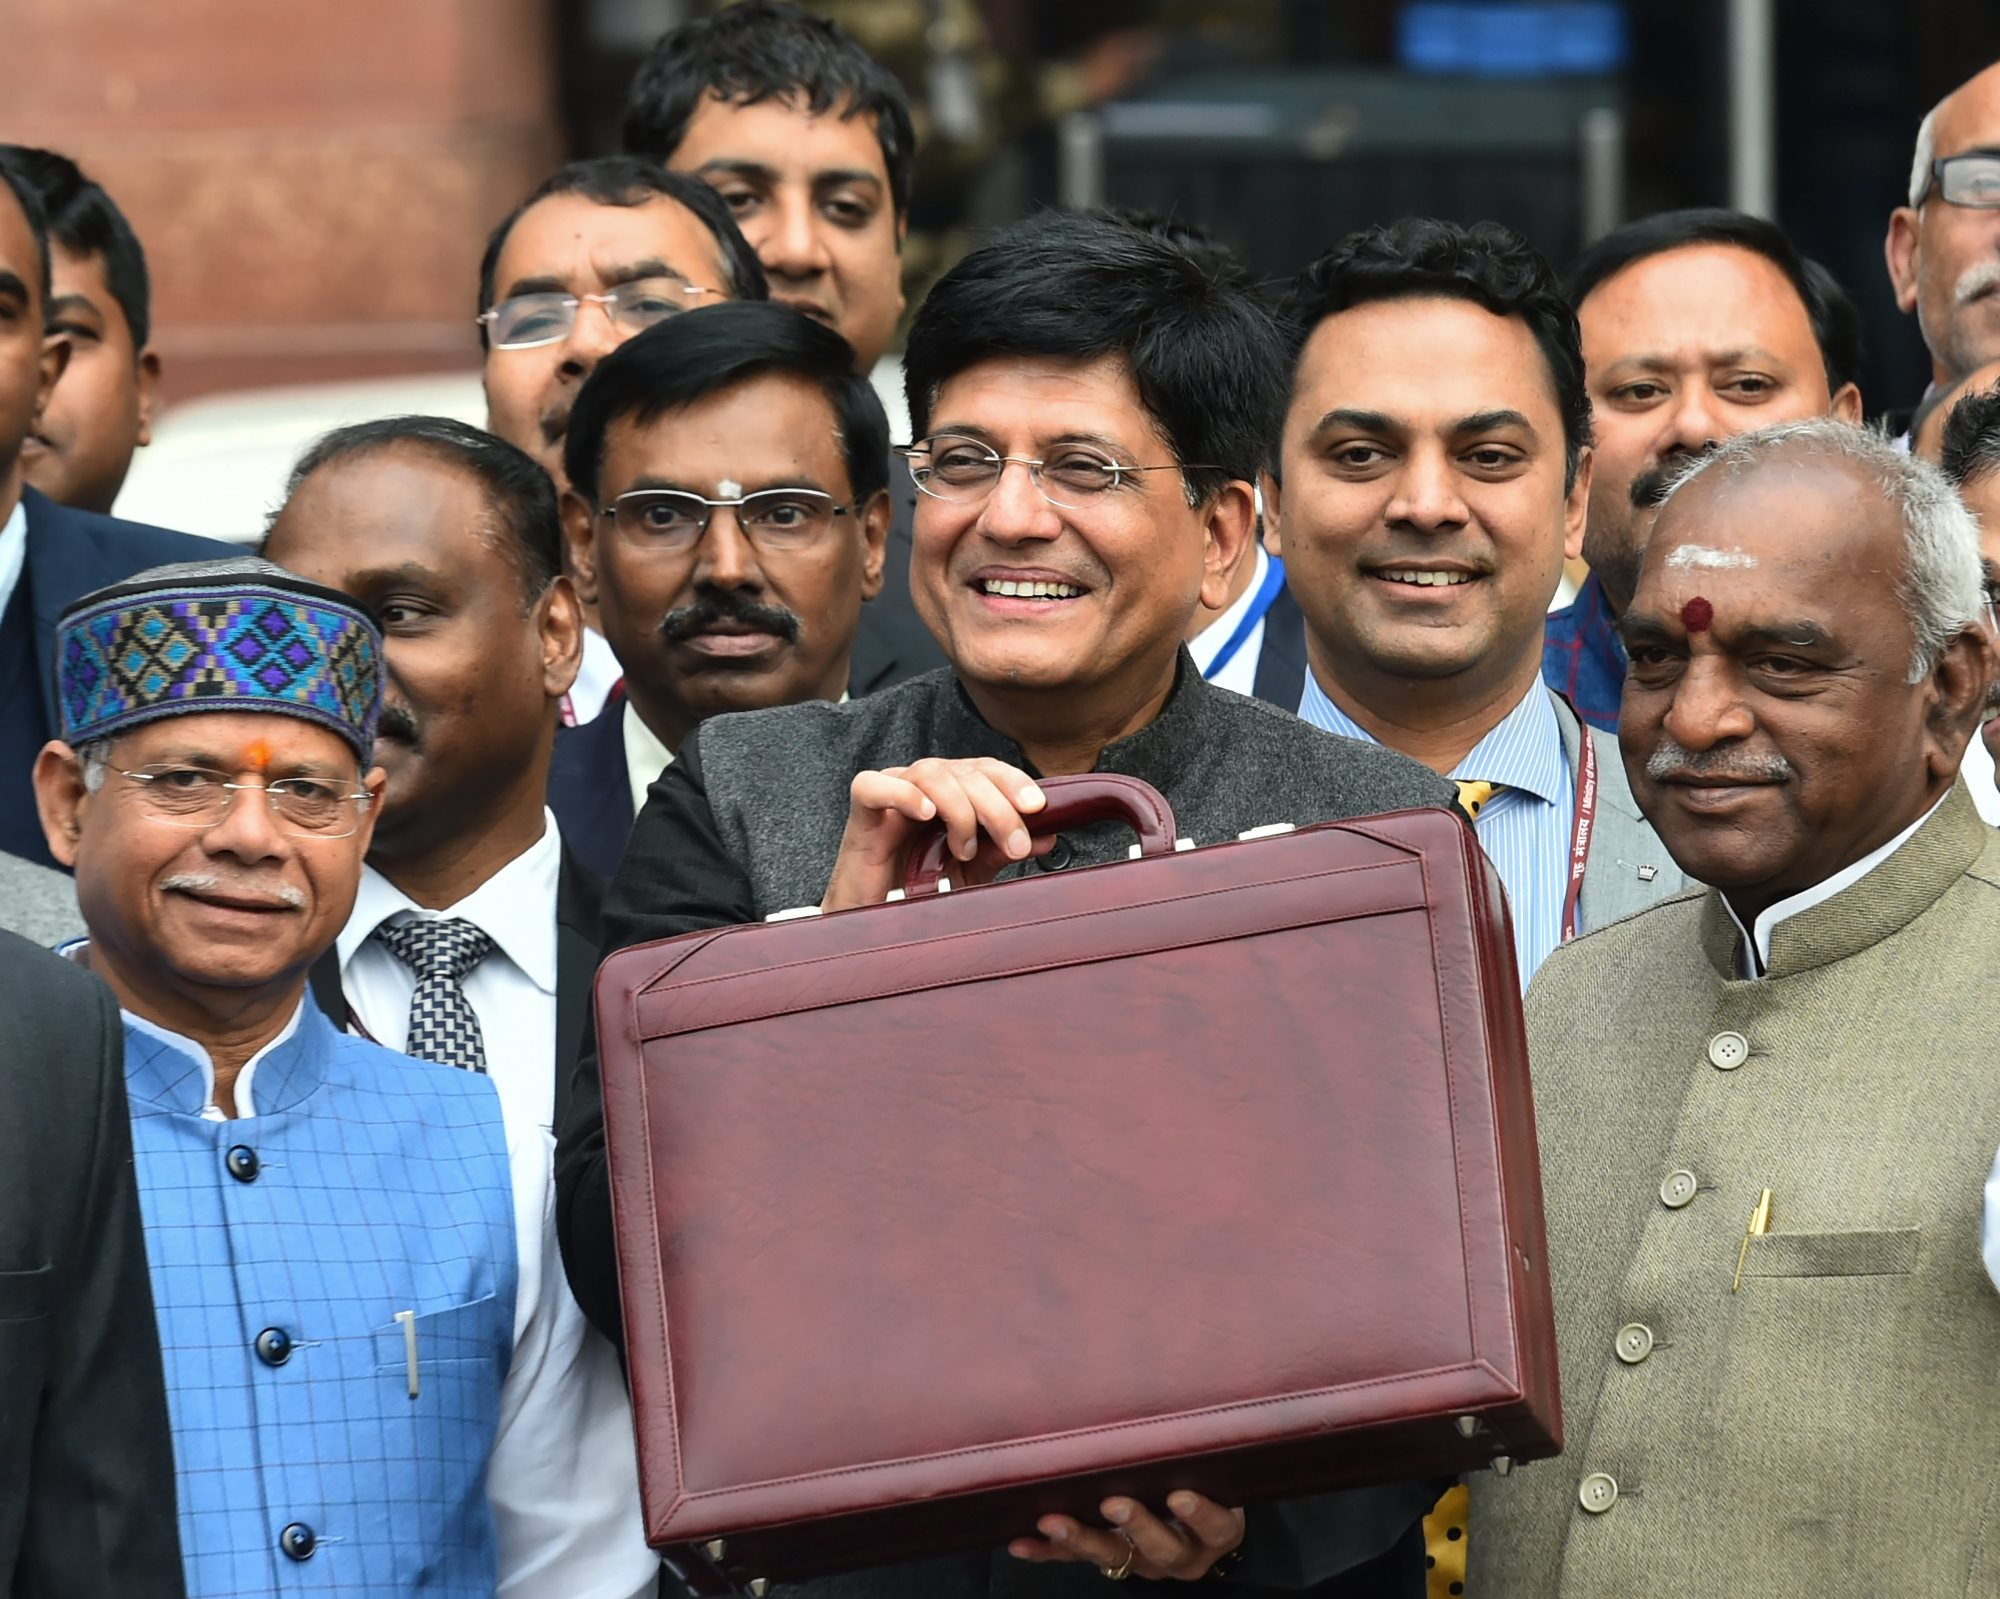 New Delhi: Finance Minister Piyush Goyal with MoS Finance ministers Shiv Pratap Shukla and P Radhakrishnan leaves the North Block to present the interim Budget 2019-20 at Parliament, in New Delhi, Friday, 1 Feb, 2019. (PTI Photo/ Arun Sharma)(PTI2_1_2019_000011B)